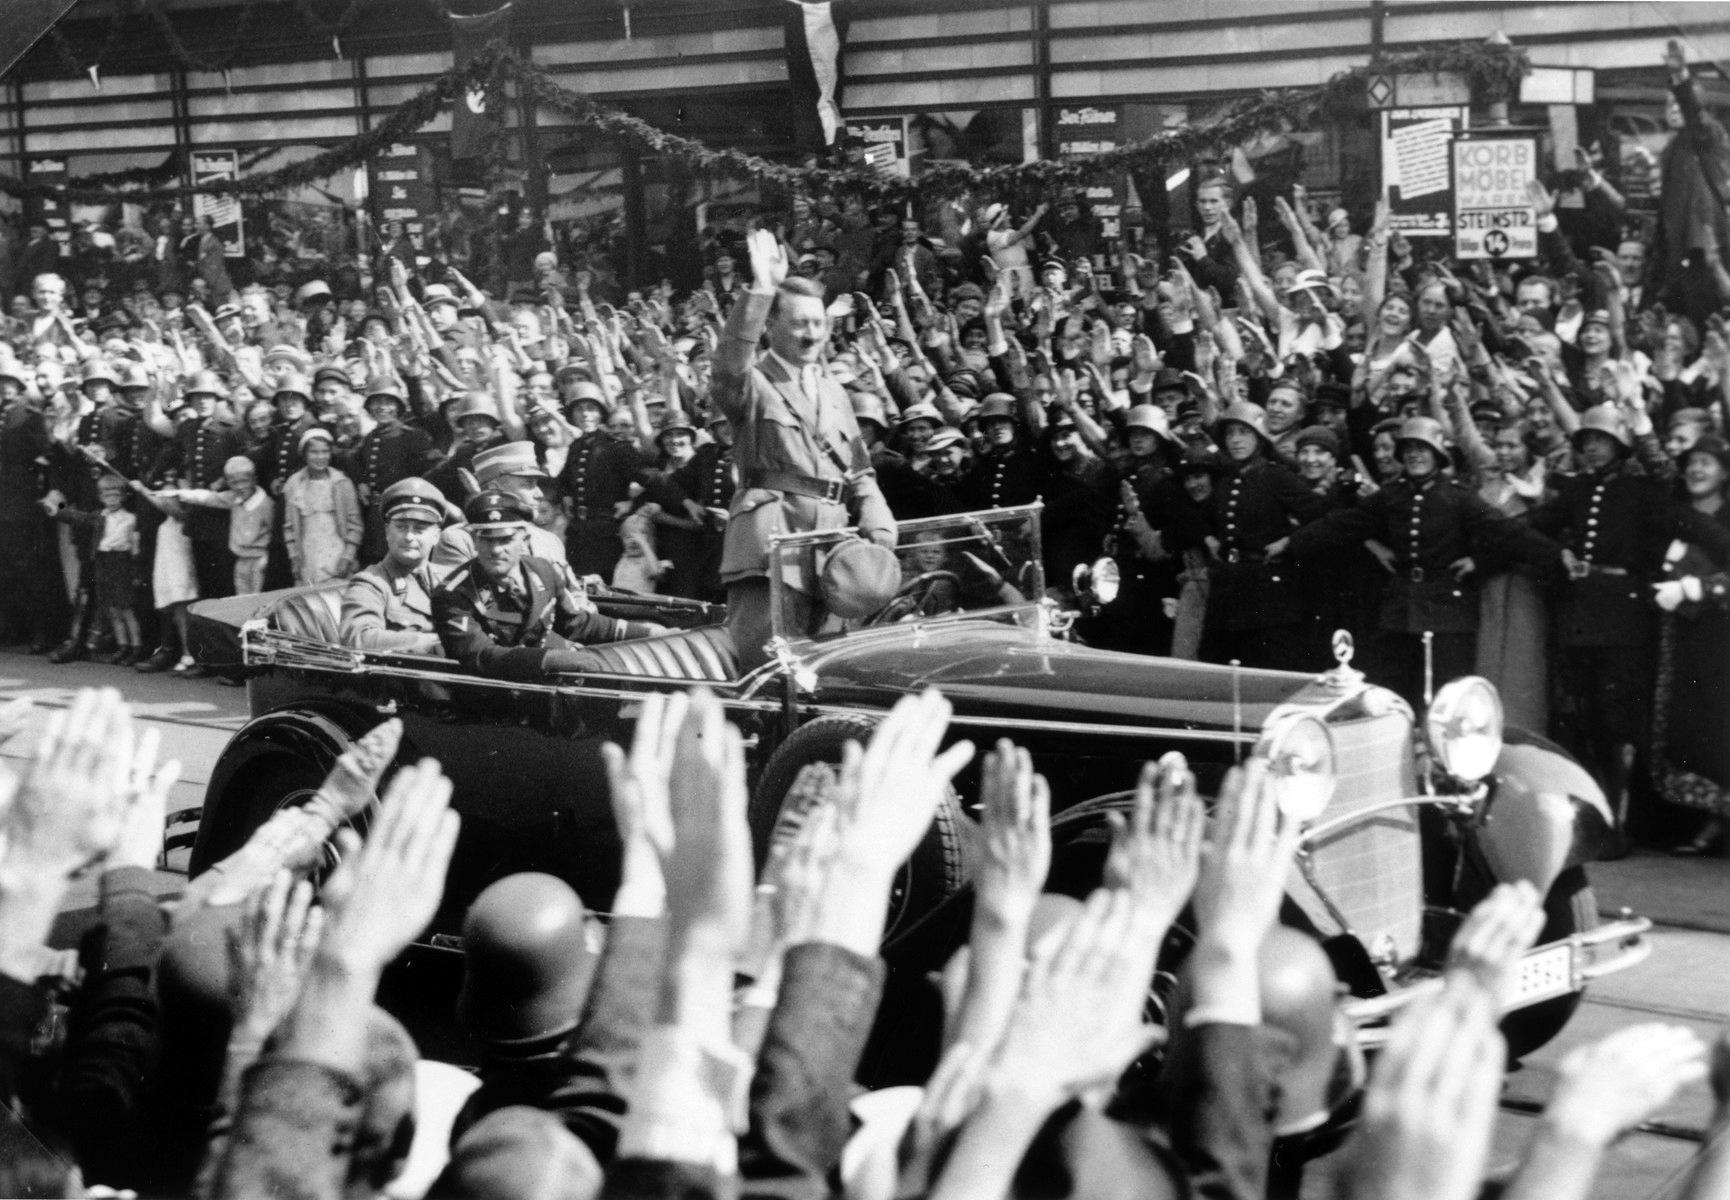 Standing in an open car, Adolf Hitler salutes a crowd lining the streets of Hamburg